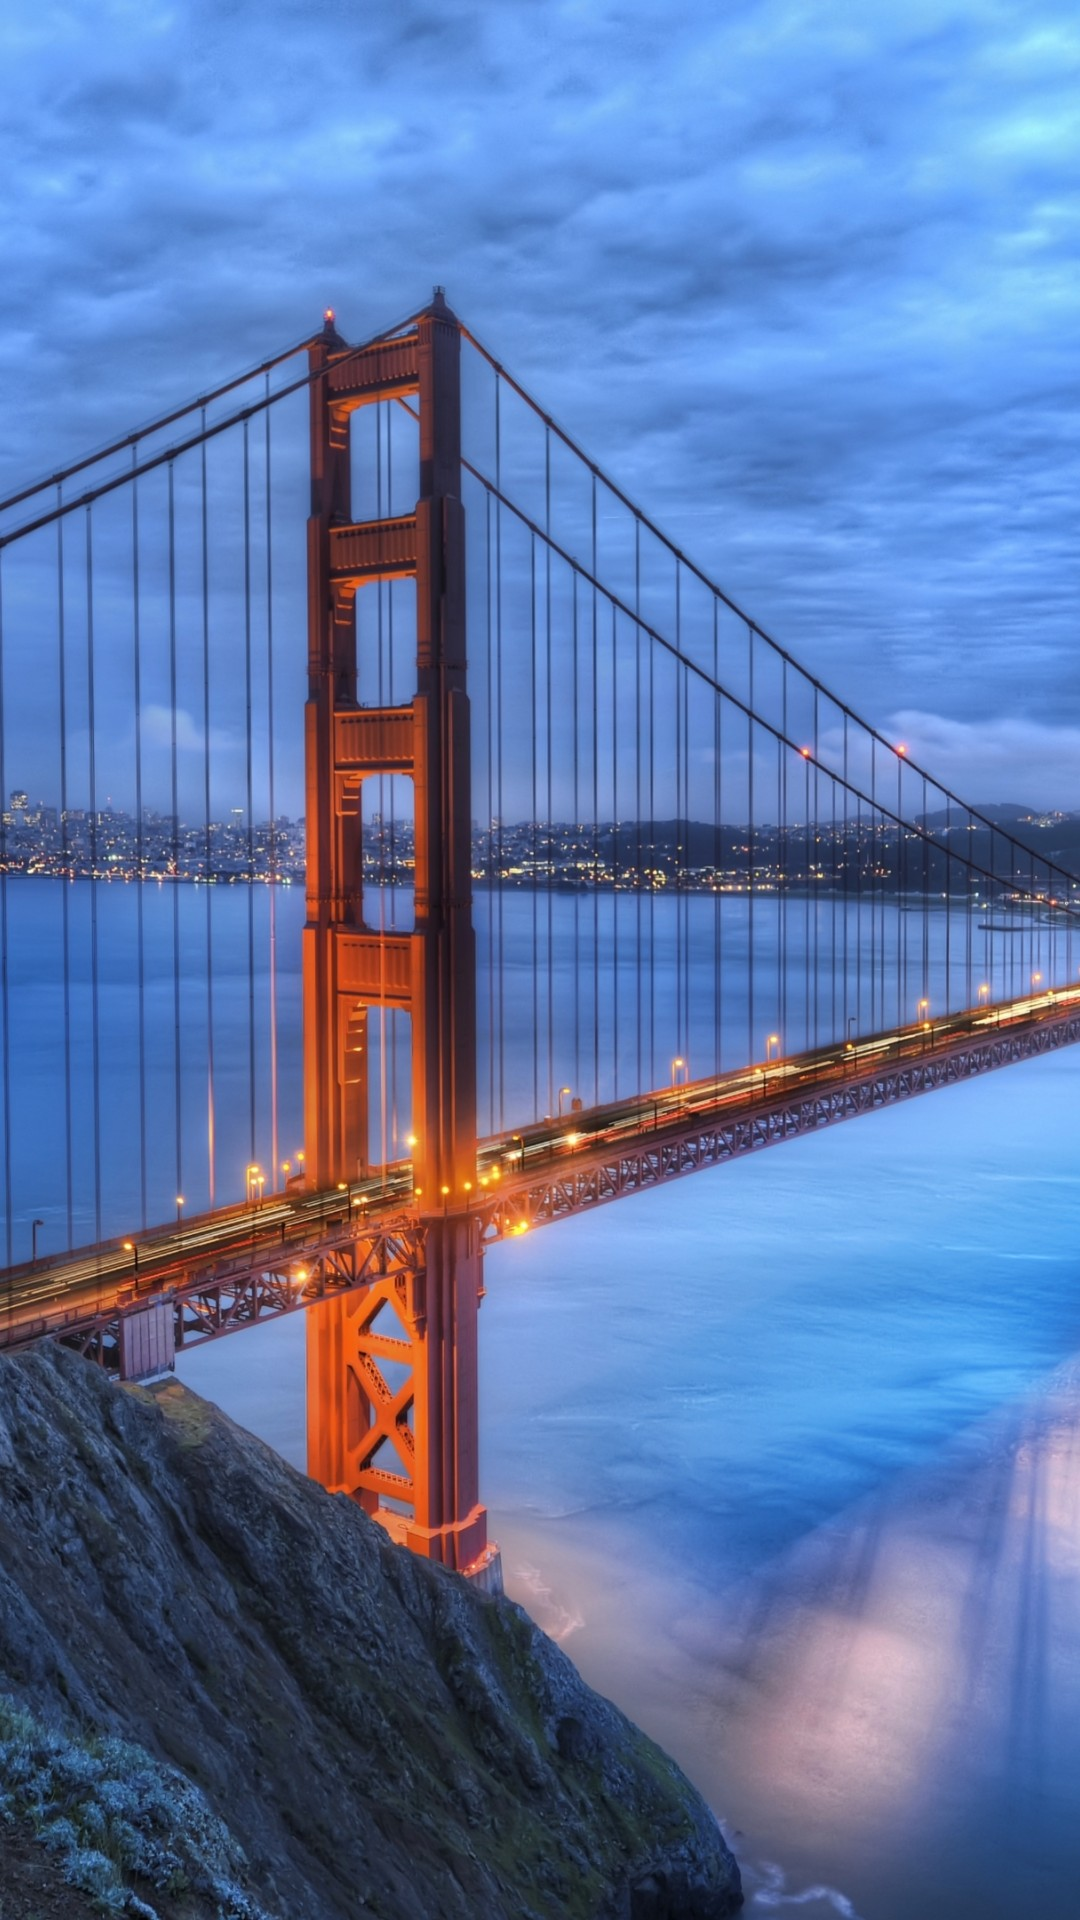 4k Wallpaper San Francisco Wallpapersafari